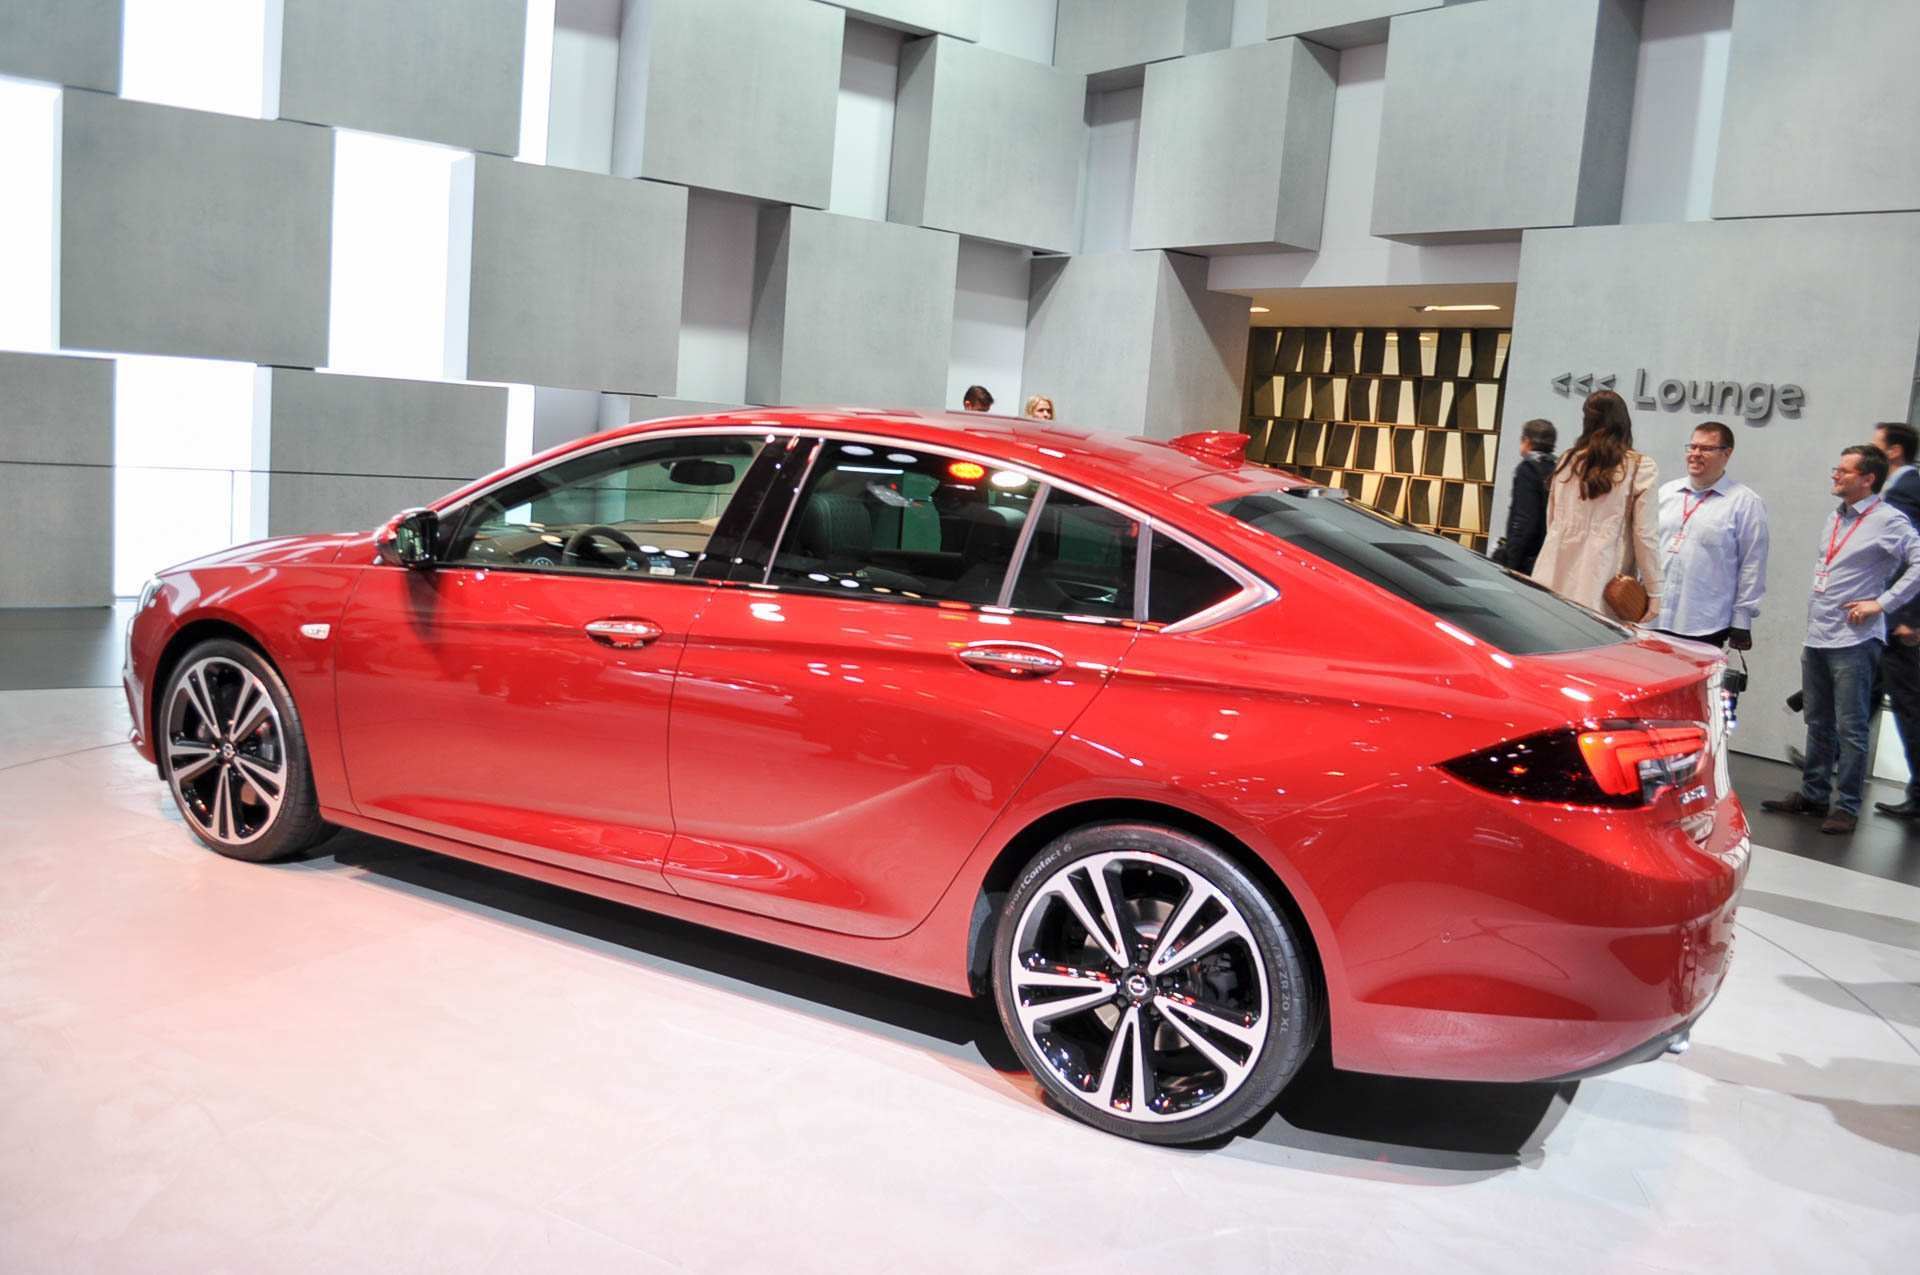 94 New Opel Insignia Grand Sport 2020 New Concept for Opel Insignia Grand Sport 2020